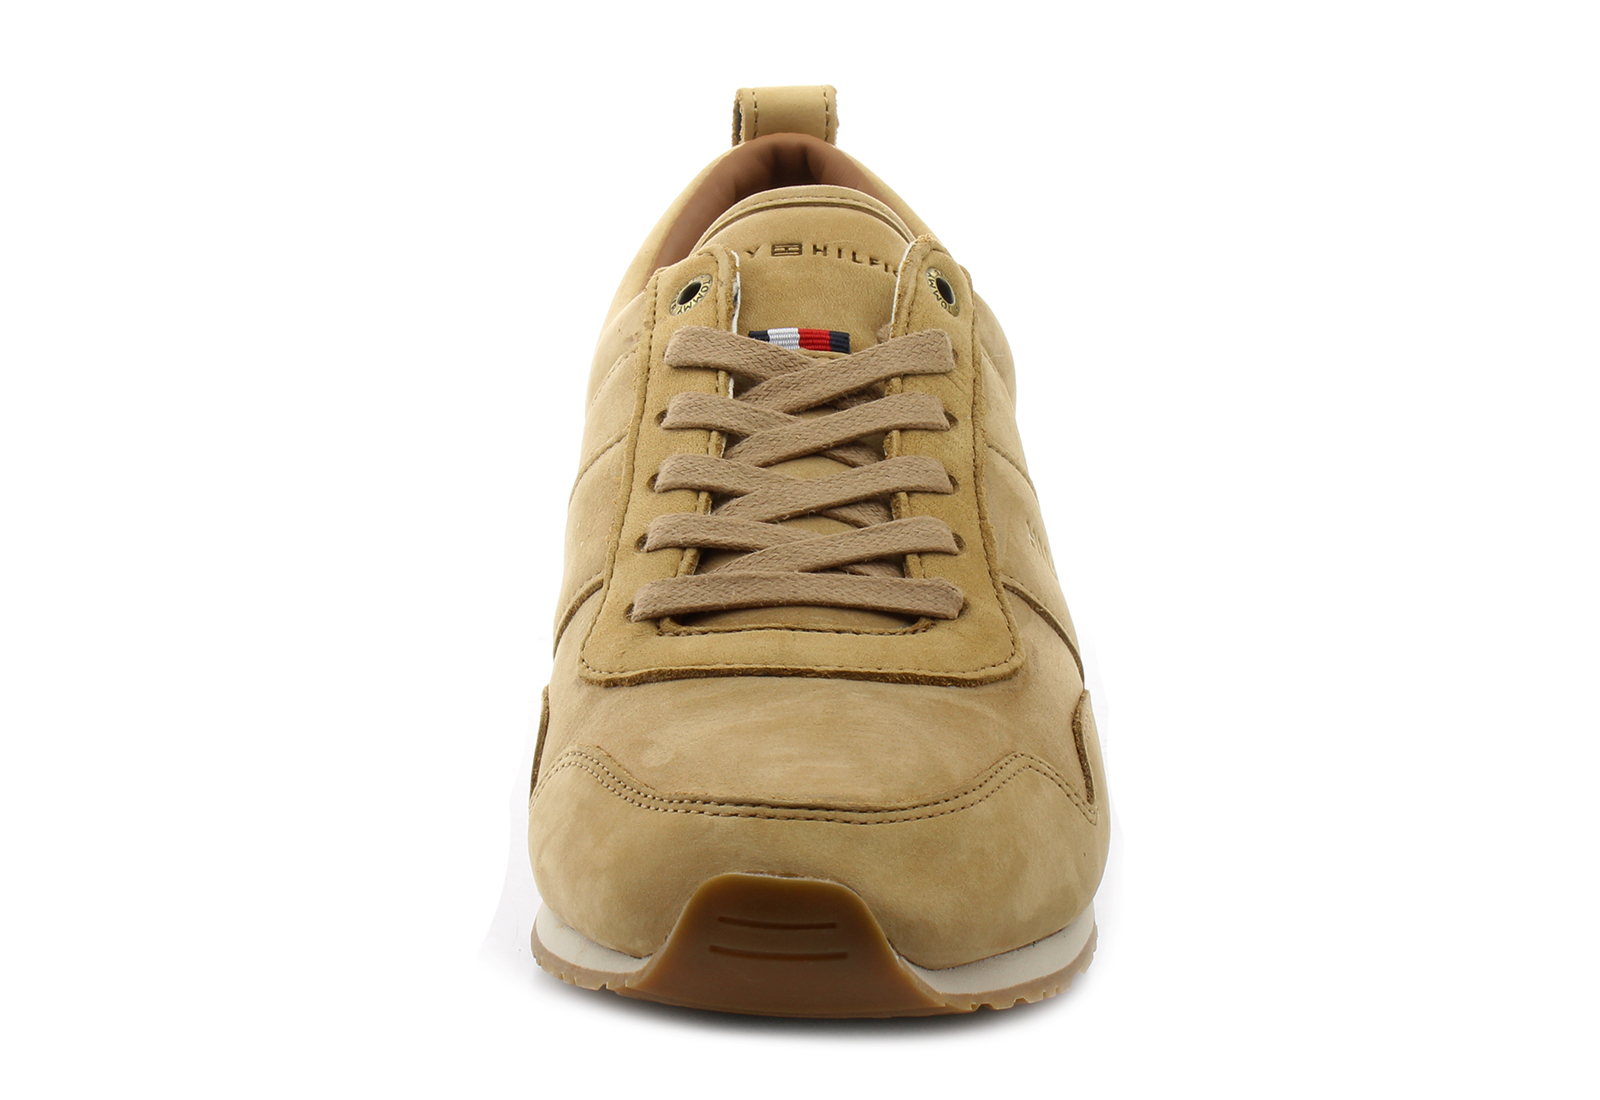 Tommy Hilfiger Cipő - Maxwell 11 - 18S-1437-102 - Office Shoes ... 5ec9a54eed